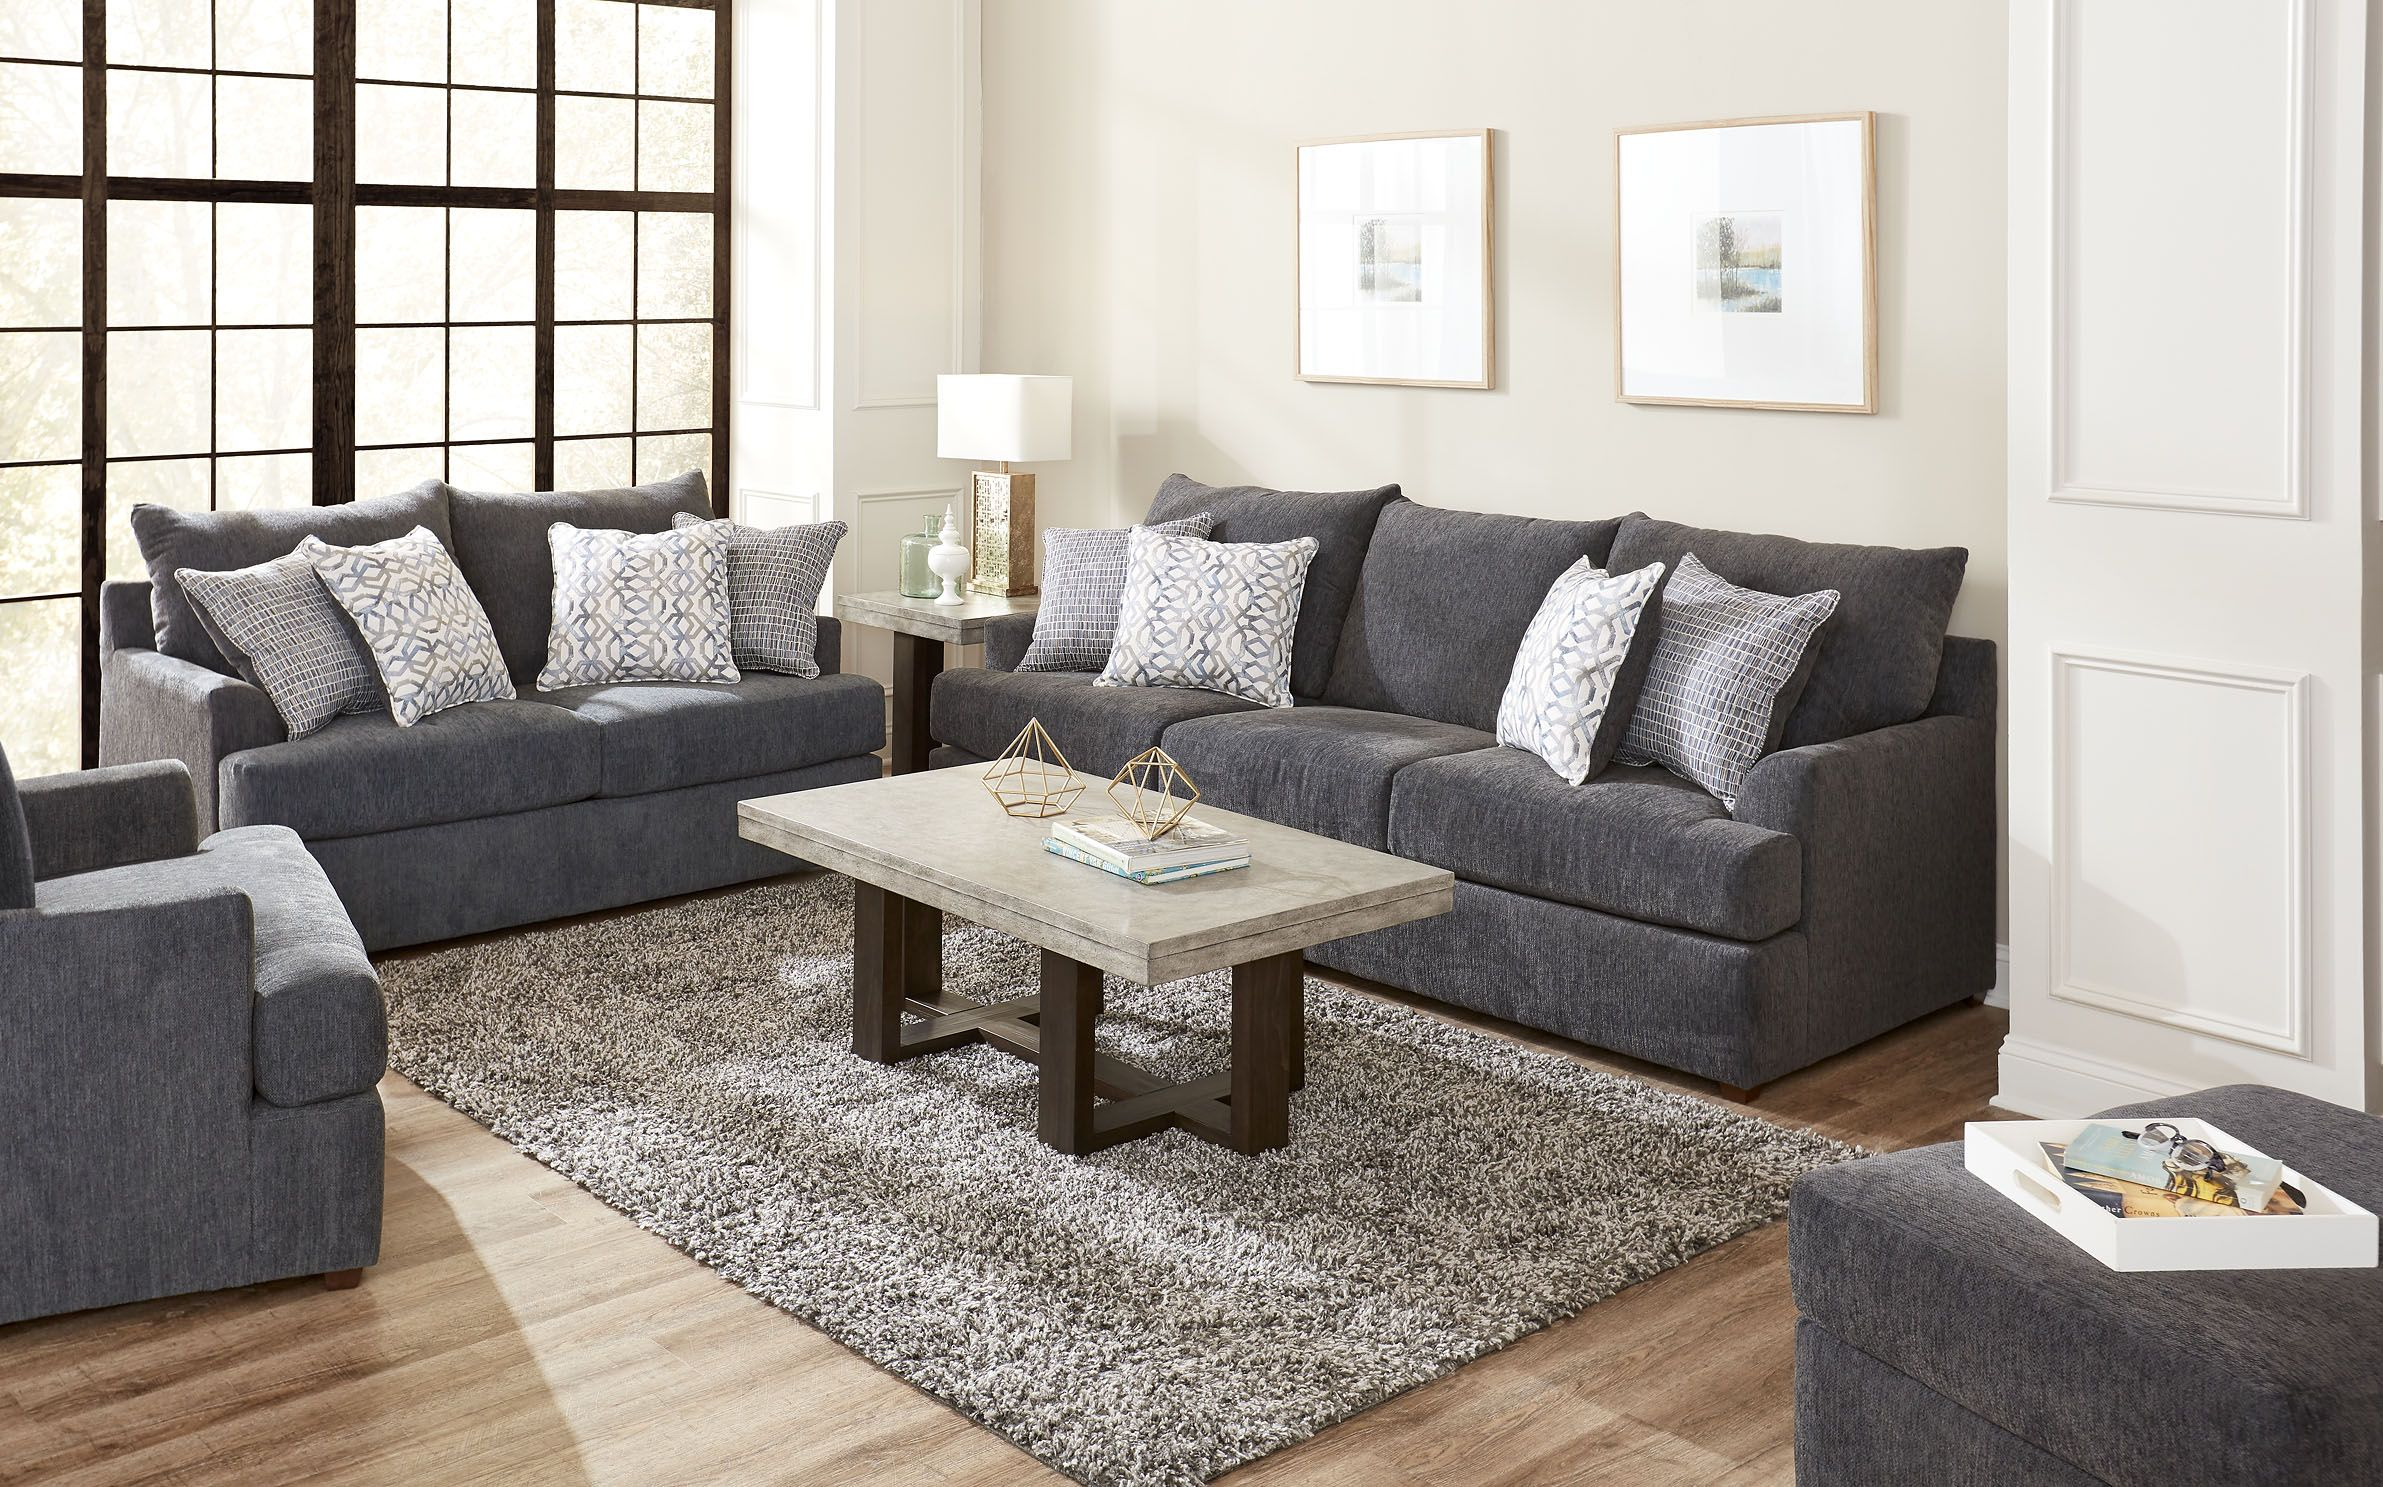 The Stephenson Sofa Set Price Includes Sofa Loveseat And Chair This Be Furniture Design Living Room Accent Pillows Living Room Living Room Cushions